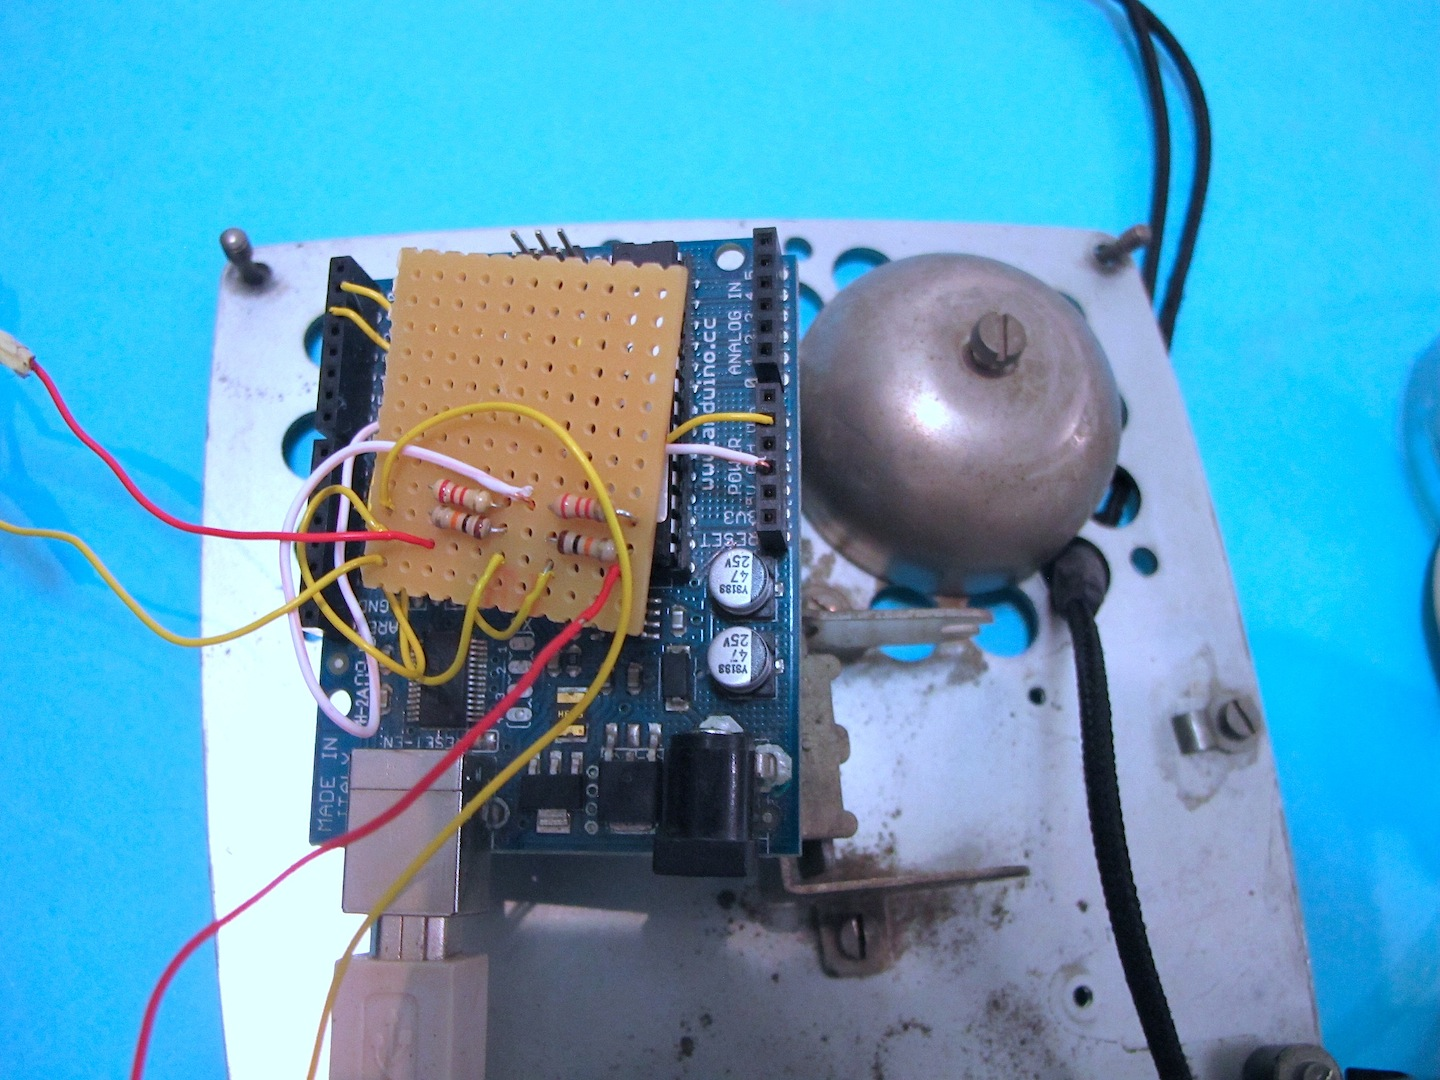 Rotary Dial Phone To Arduino Open Lab Egypt Handset Wiring Diagram Ok The Final Step Is Connect Your Computer And Write Some Code That Reads Numbers Also Tells Us Whether Up Or